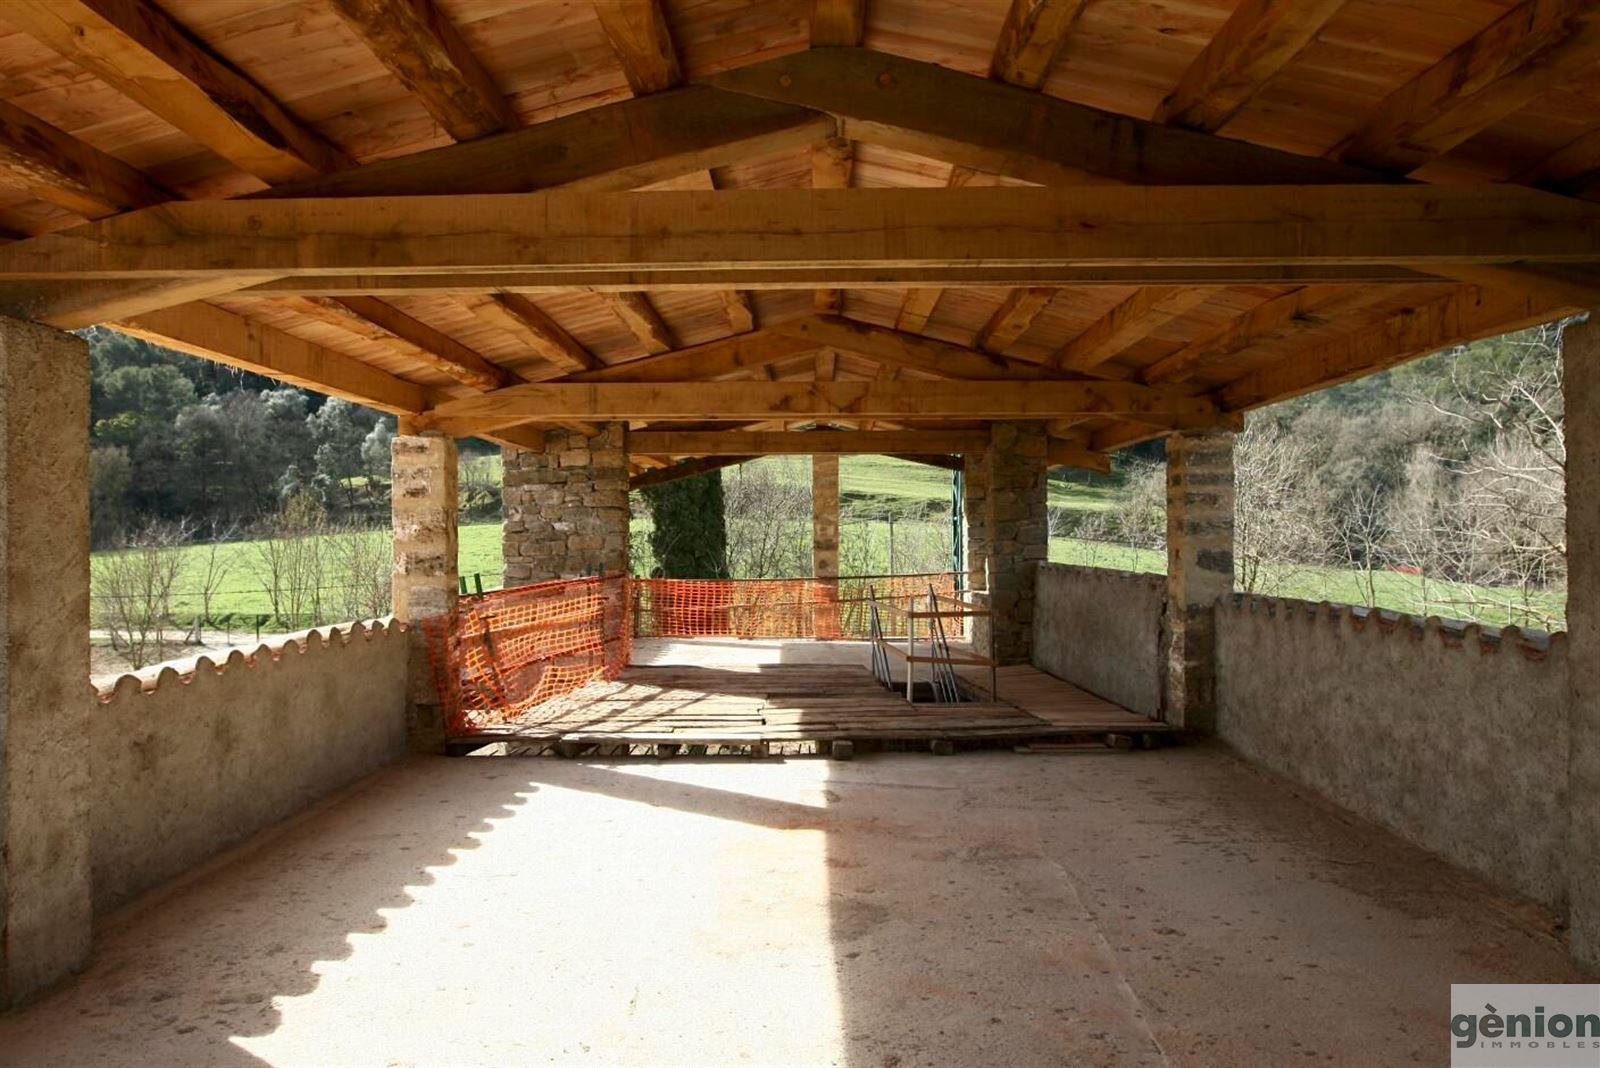 FARMHOUSE CLOSE TO BANYOLES LAKE. 14 ha OF LAND AND 1,900 m² GROSS FLOOR AREA